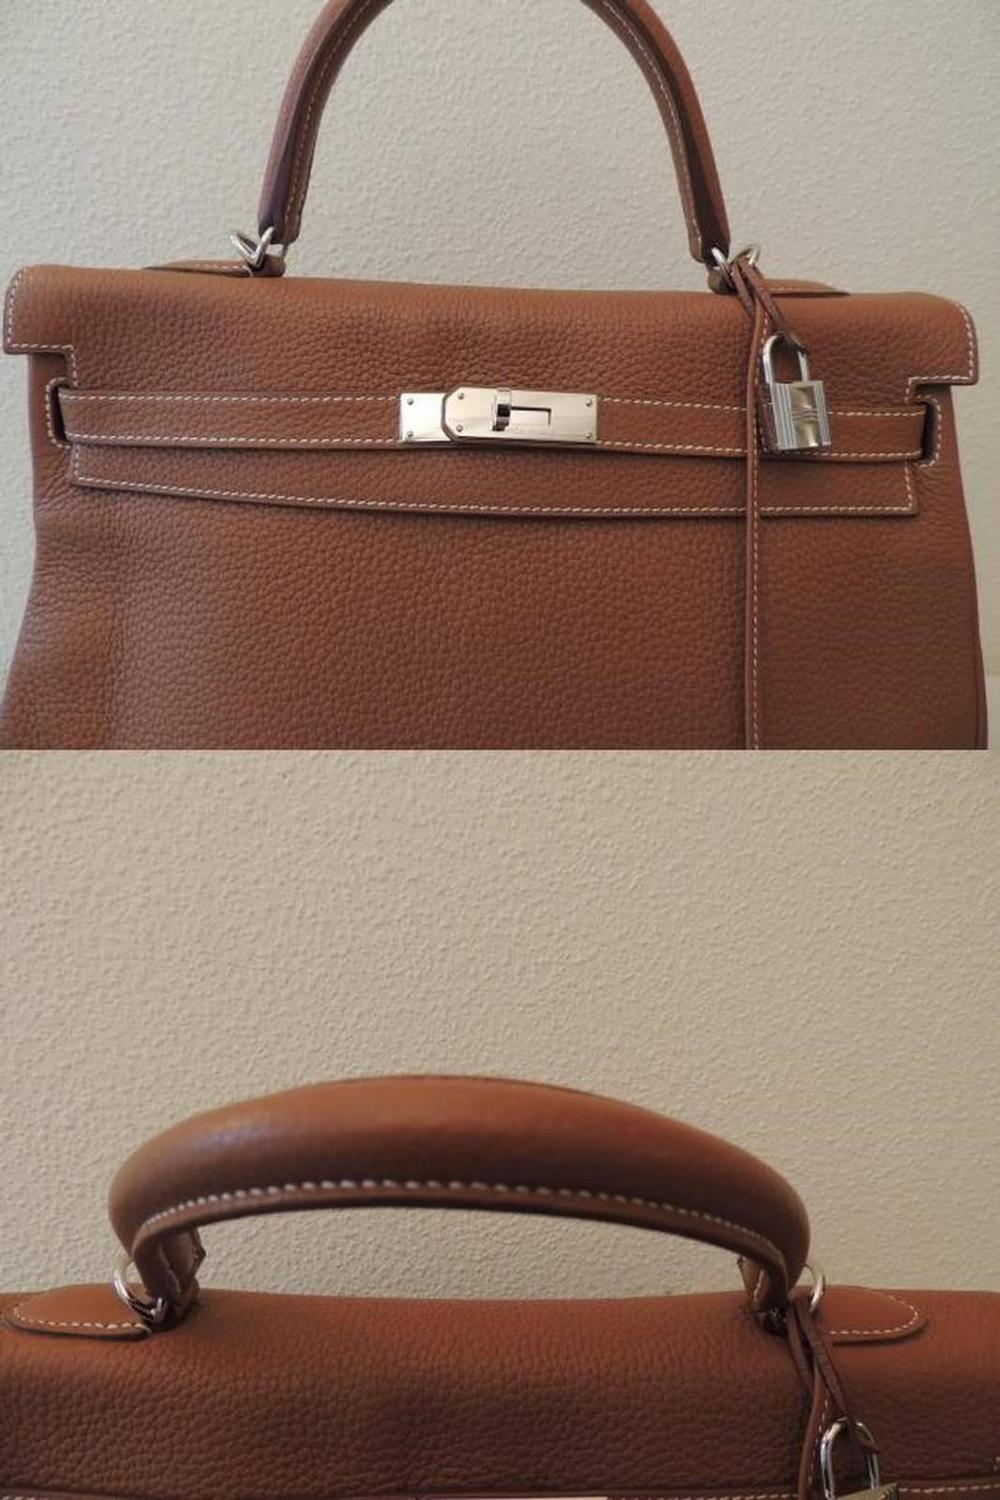 Hermes Kelly 35 Handle Bag Gold Clemence Leather PHW Full Set at ...